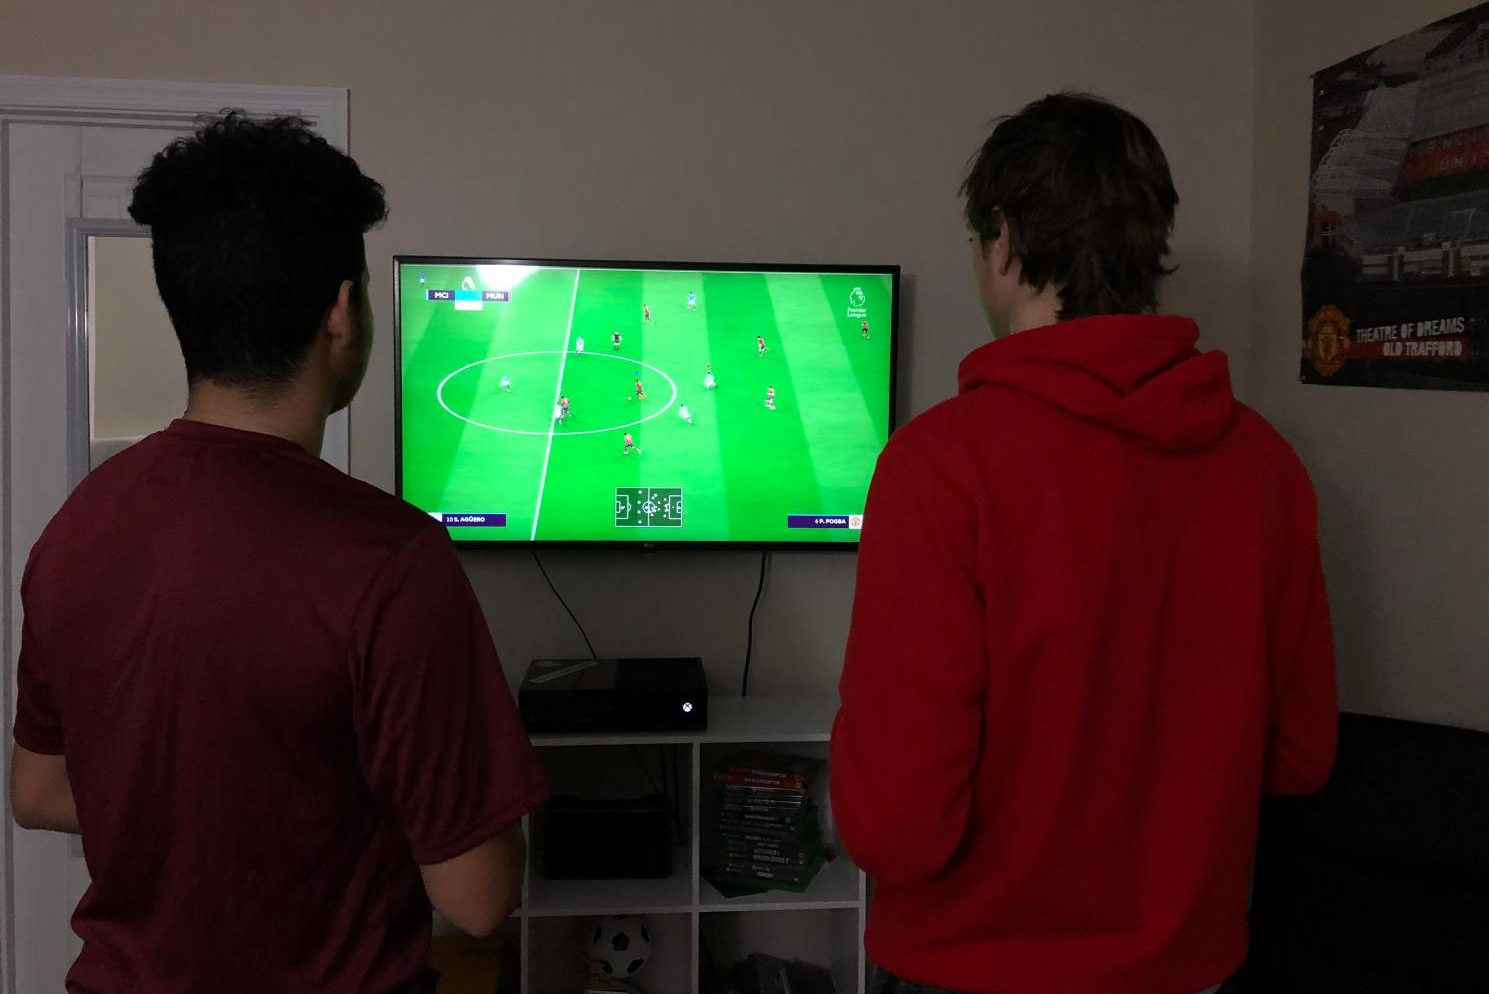 Braden Weinel and Julian Rodriguez face off in a game of FIFA 19.